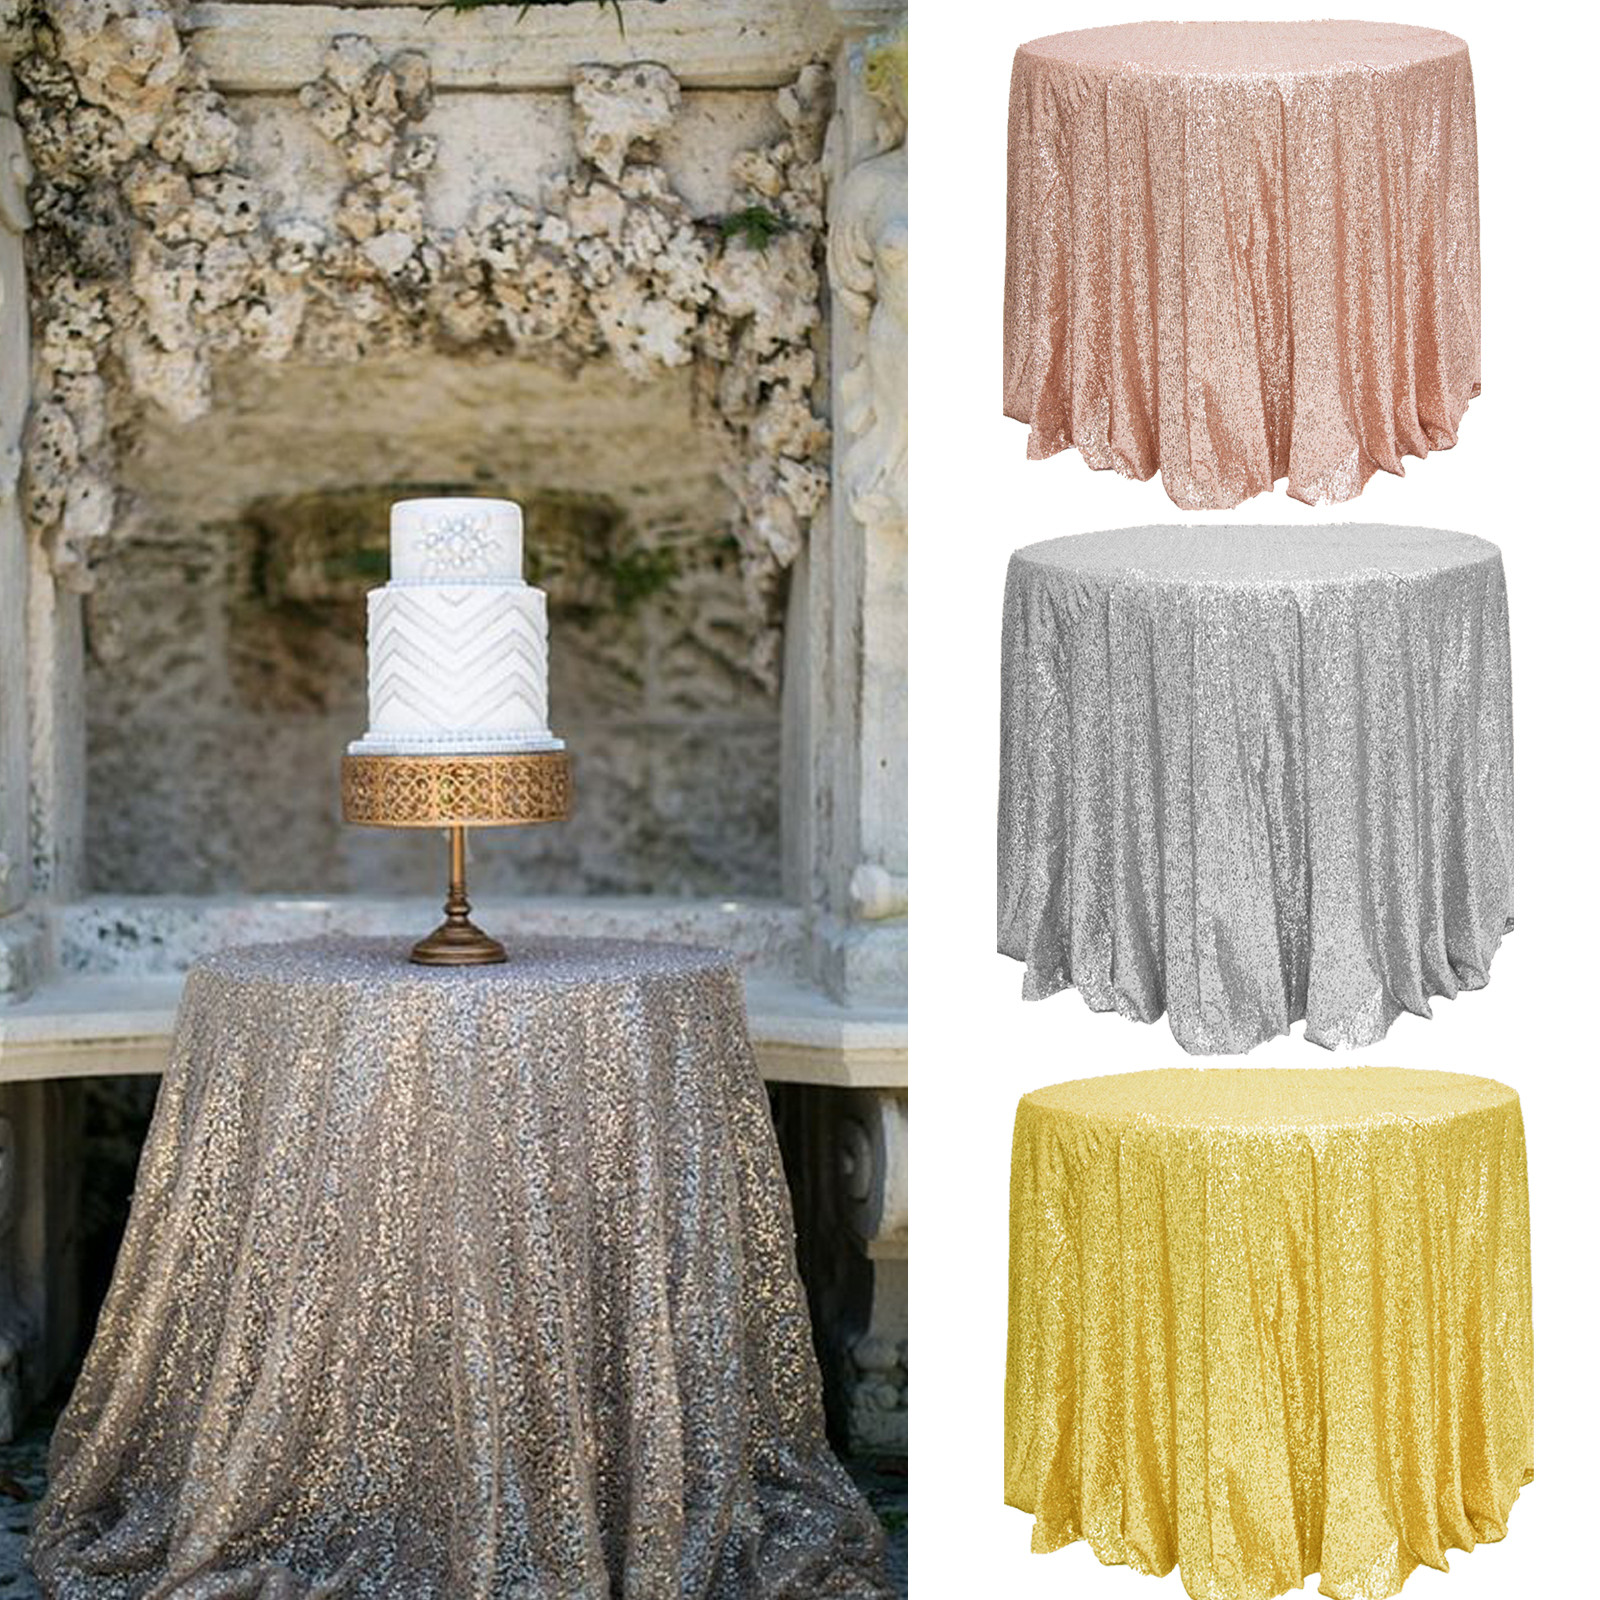 Best ideas about DIY Glitter Tablecloth . Save or Pin Sparkly Glitter Sequin Tablecloth Bling Table Cover Table Now.